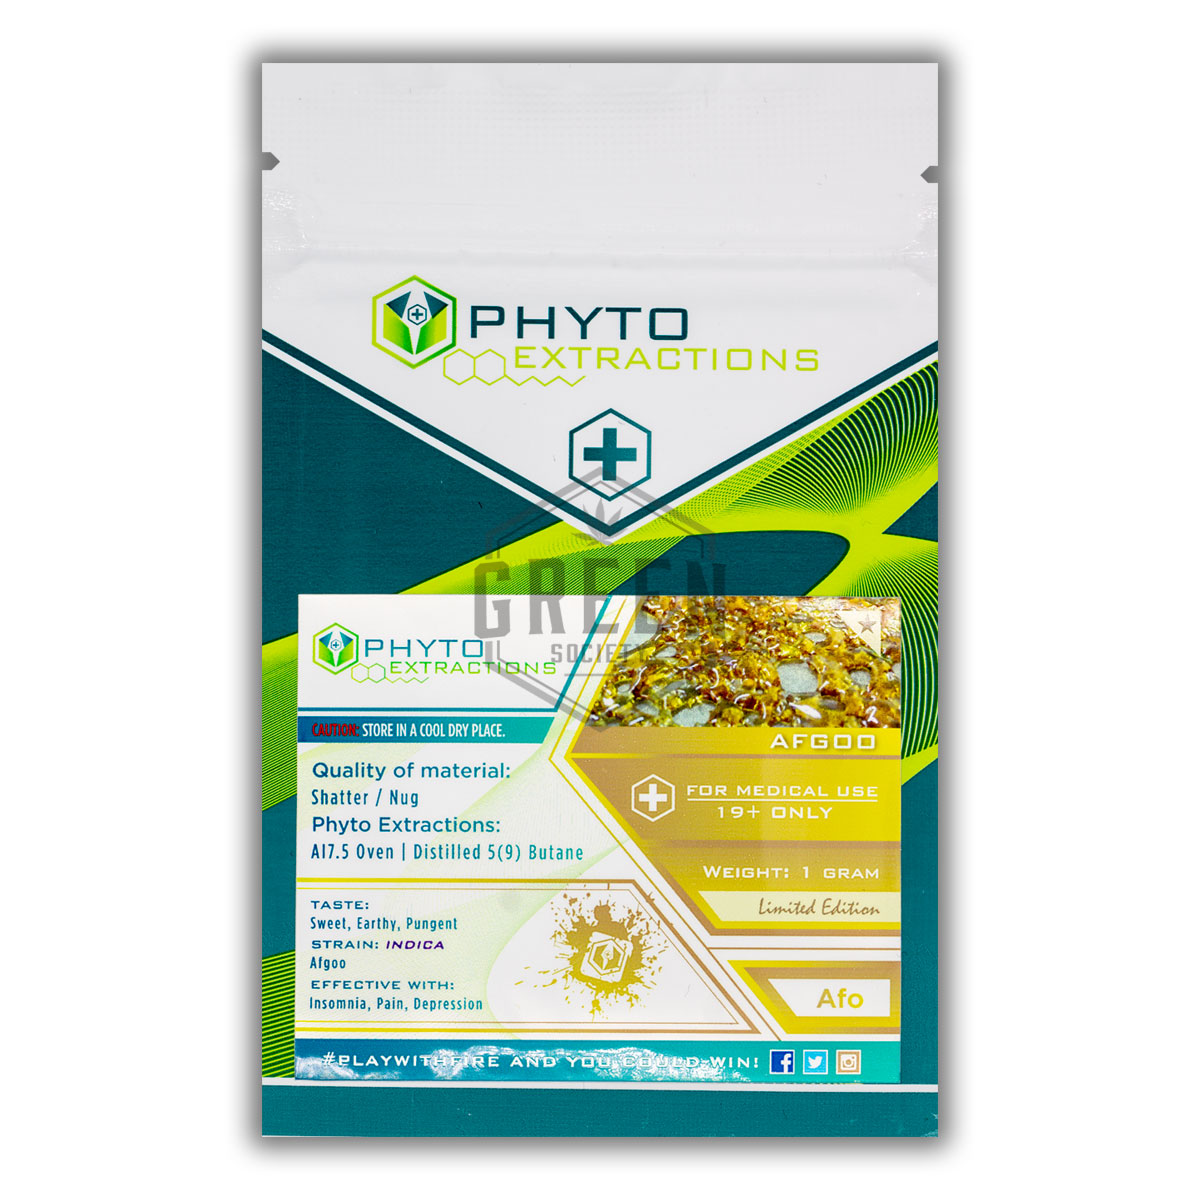 Phyto Extractions Afgoo Shatter by Green Society - Image © 2018 Green Society. All Rights Reserved.